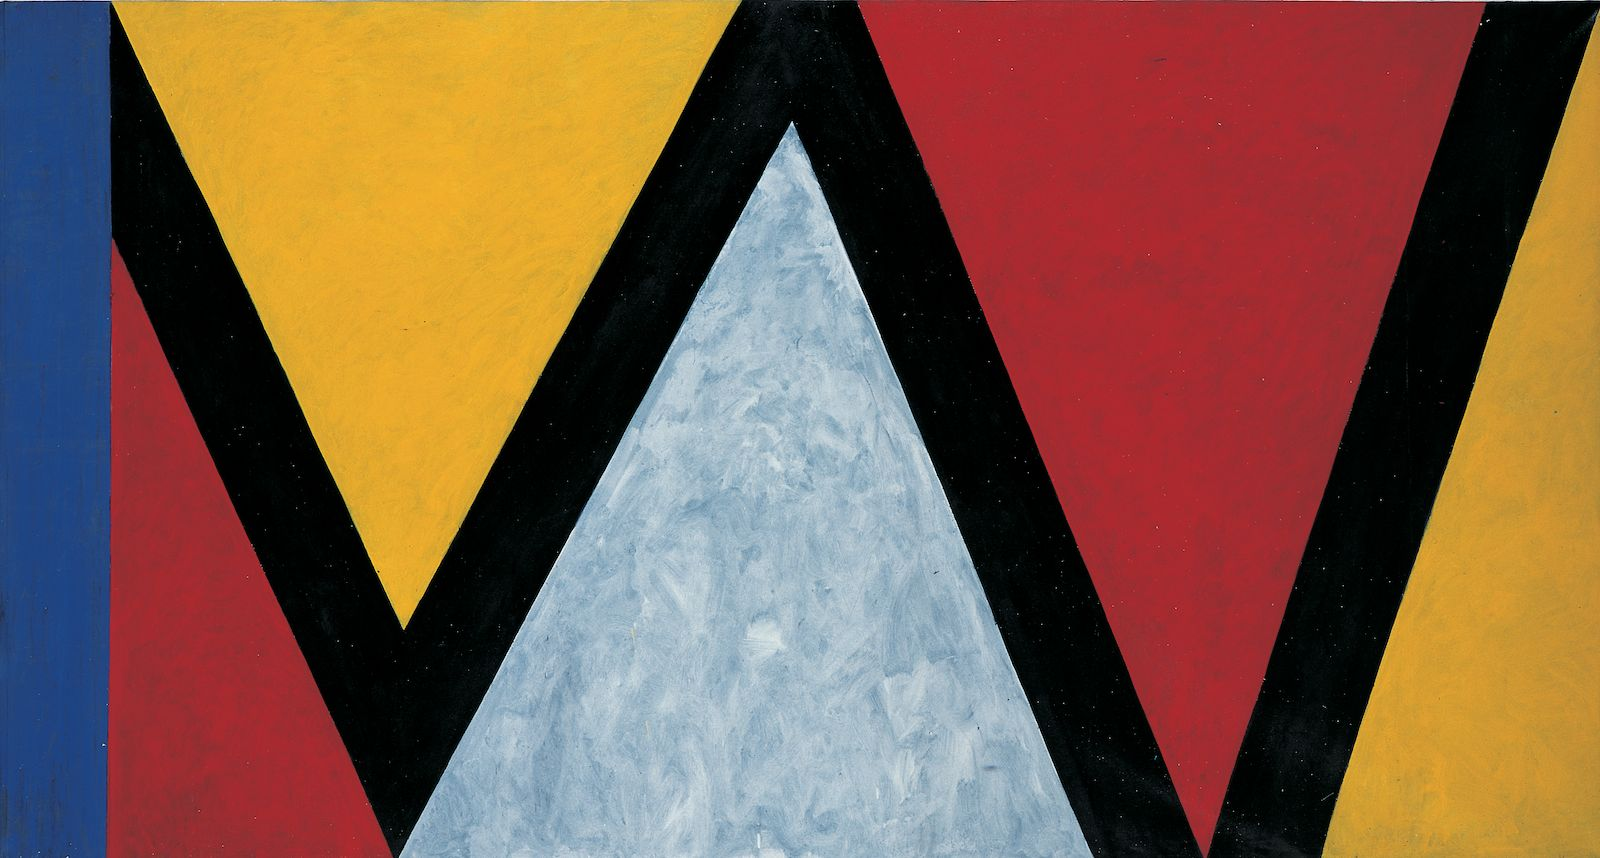 IW, 1985-86, acrylic on canvas, 230 x 430 cm